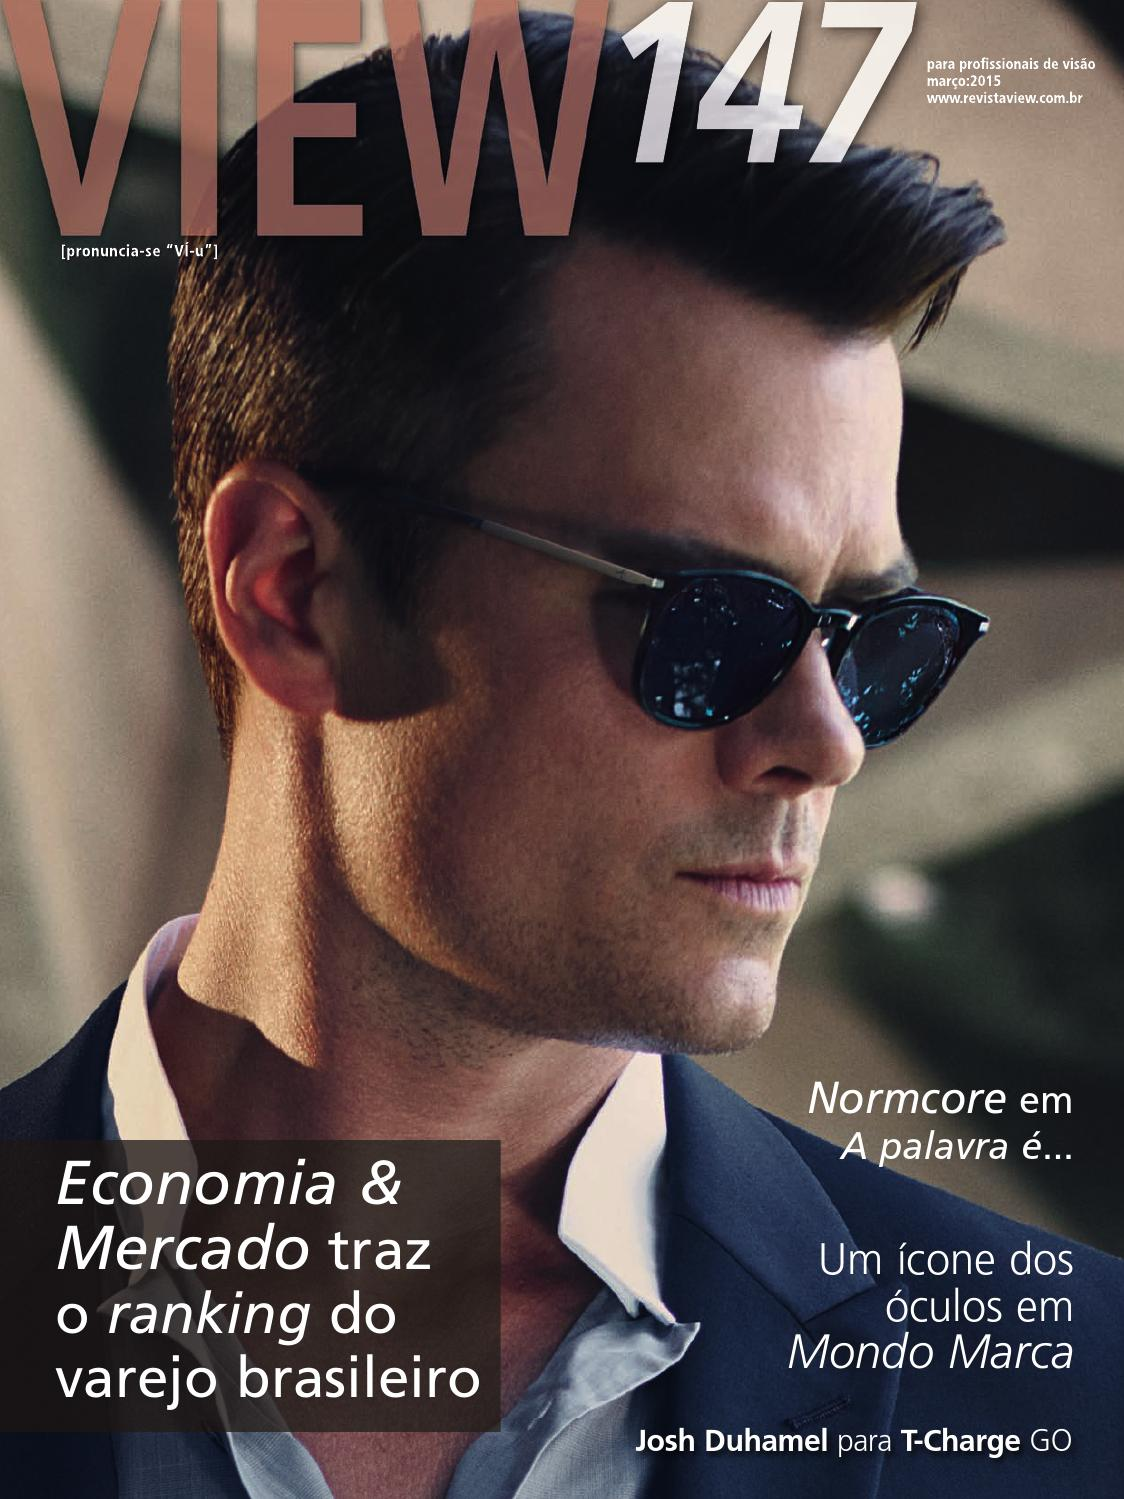 06c79a5ad55ba VIEW 147 by Revista VIEW - issuu